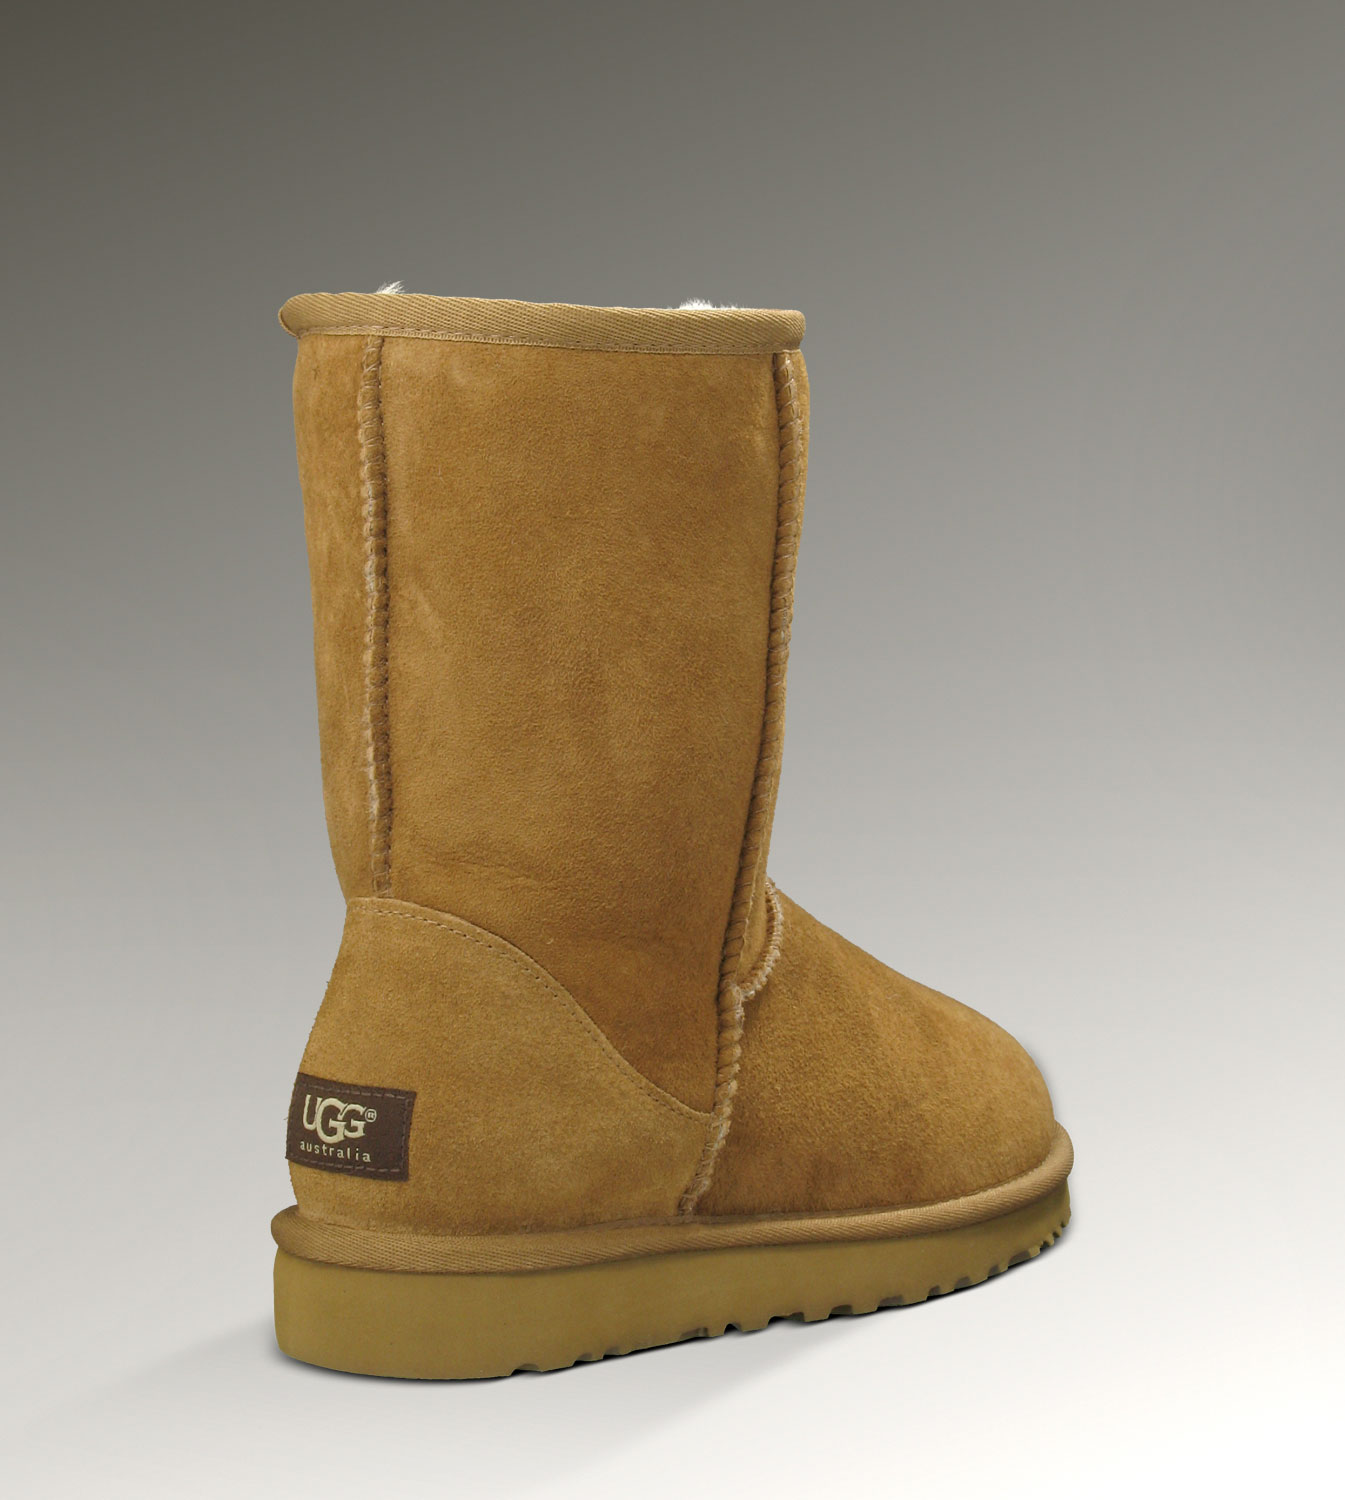 UGG Classic Short 5825 Chestnut Boots